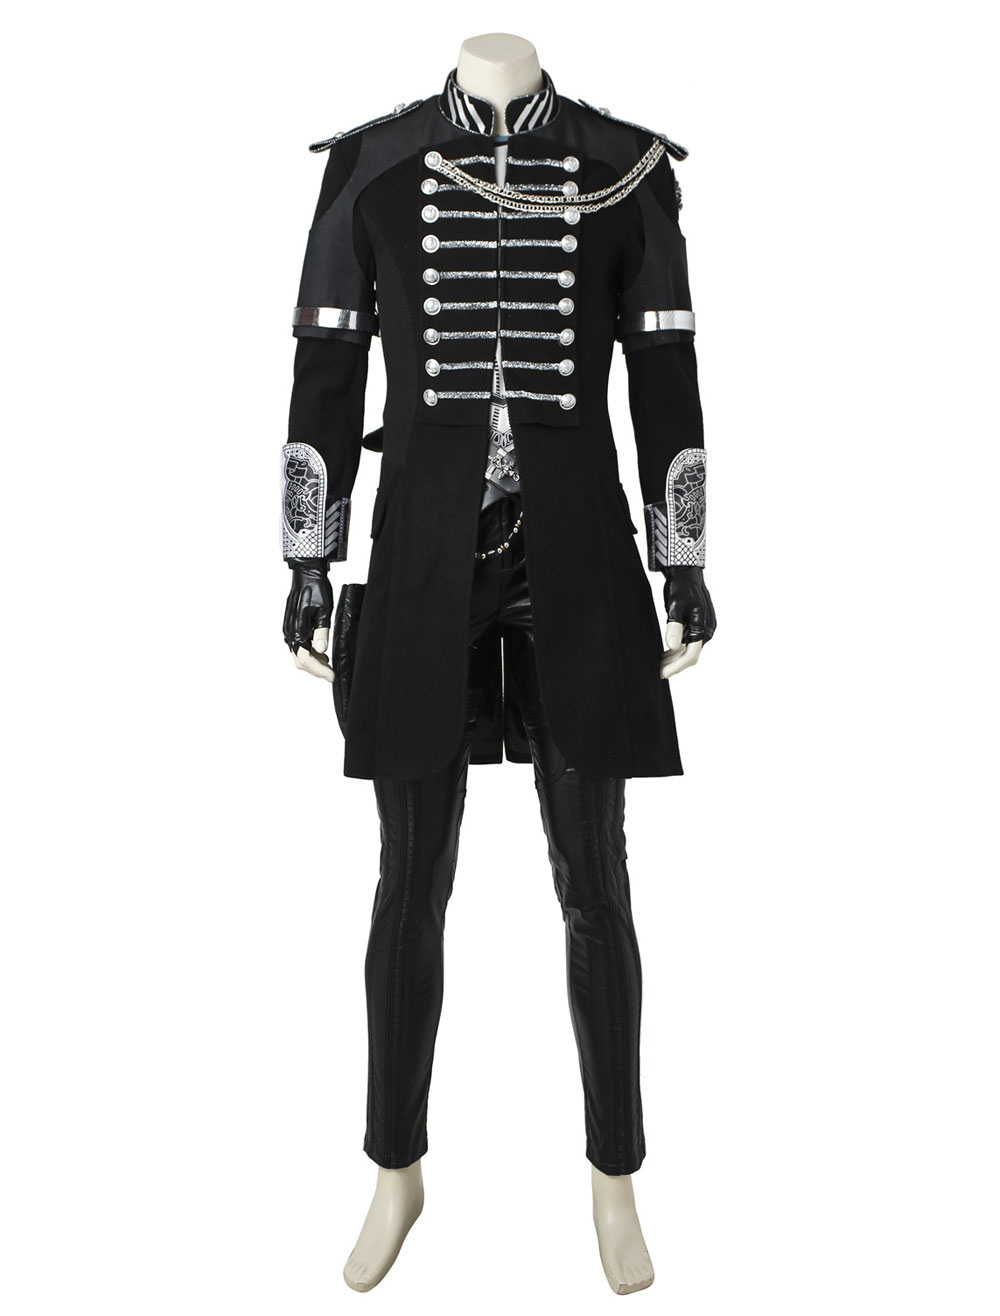 Kingsglaive Final Fantasy XV Movie Noctis Lucis Caelum Suede Leather Cosplay Costume Halloween